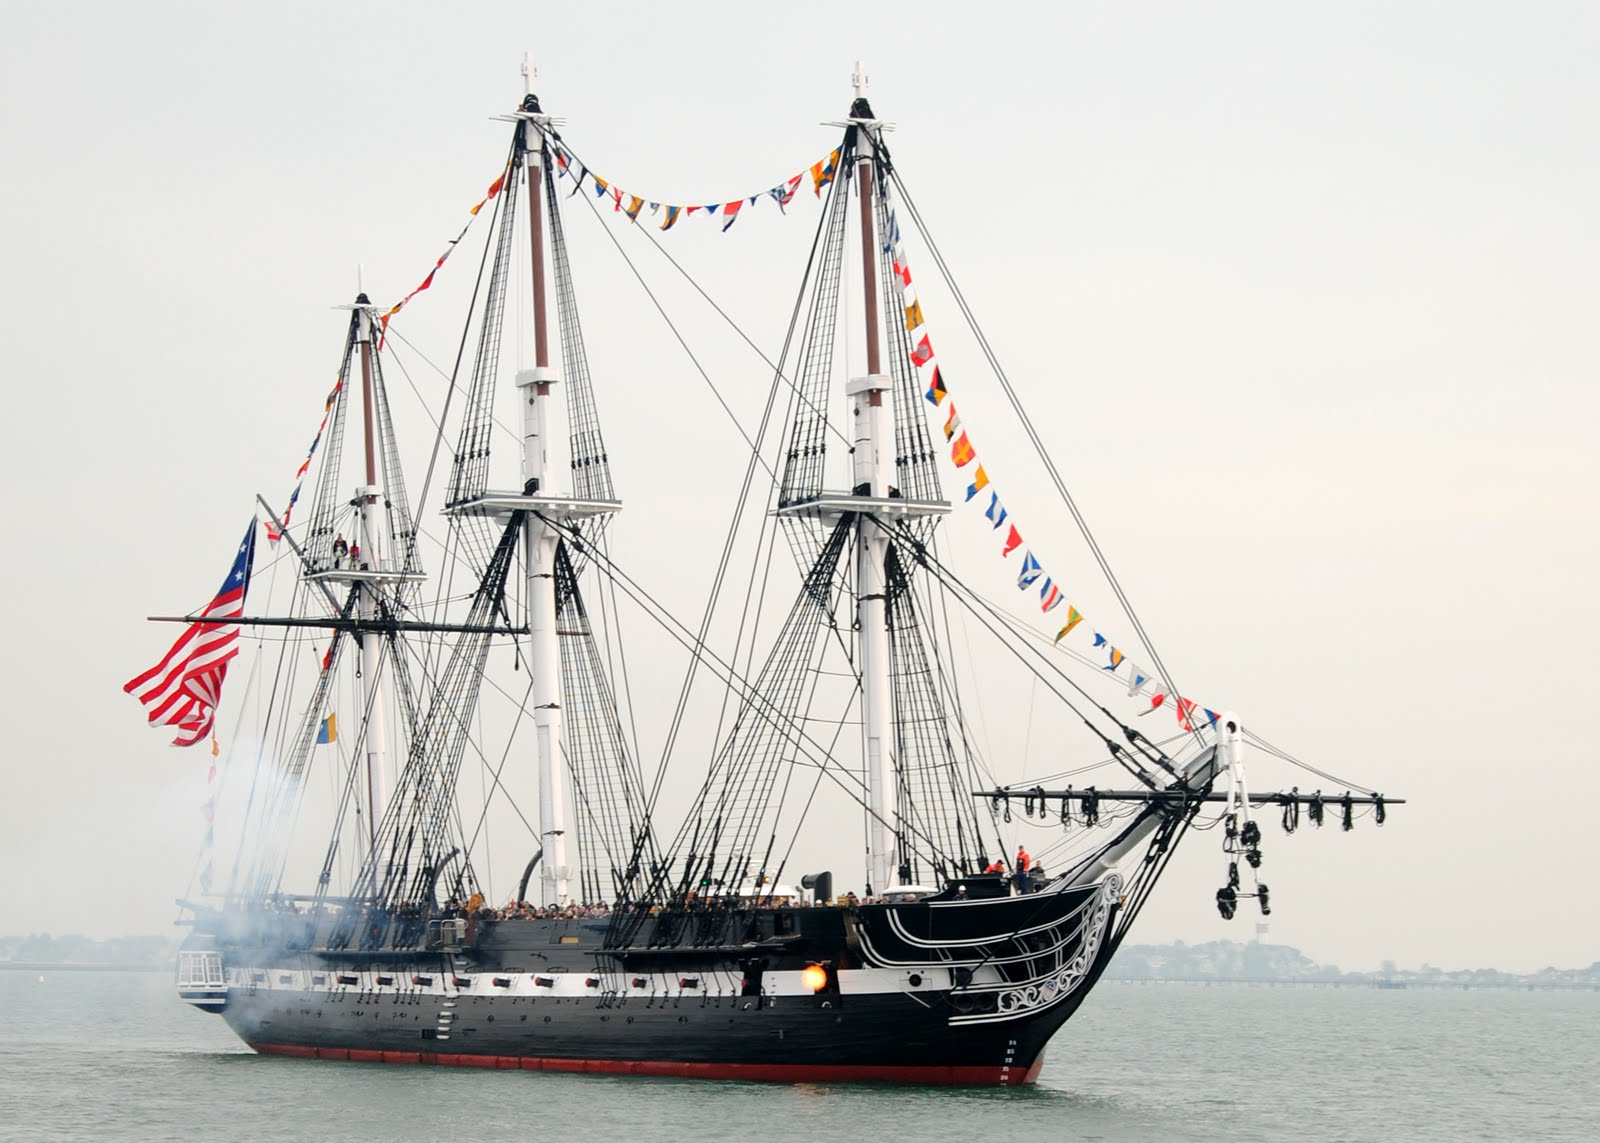 1000+ images about Of Tall Ships and Fighting Men on Pinterest.